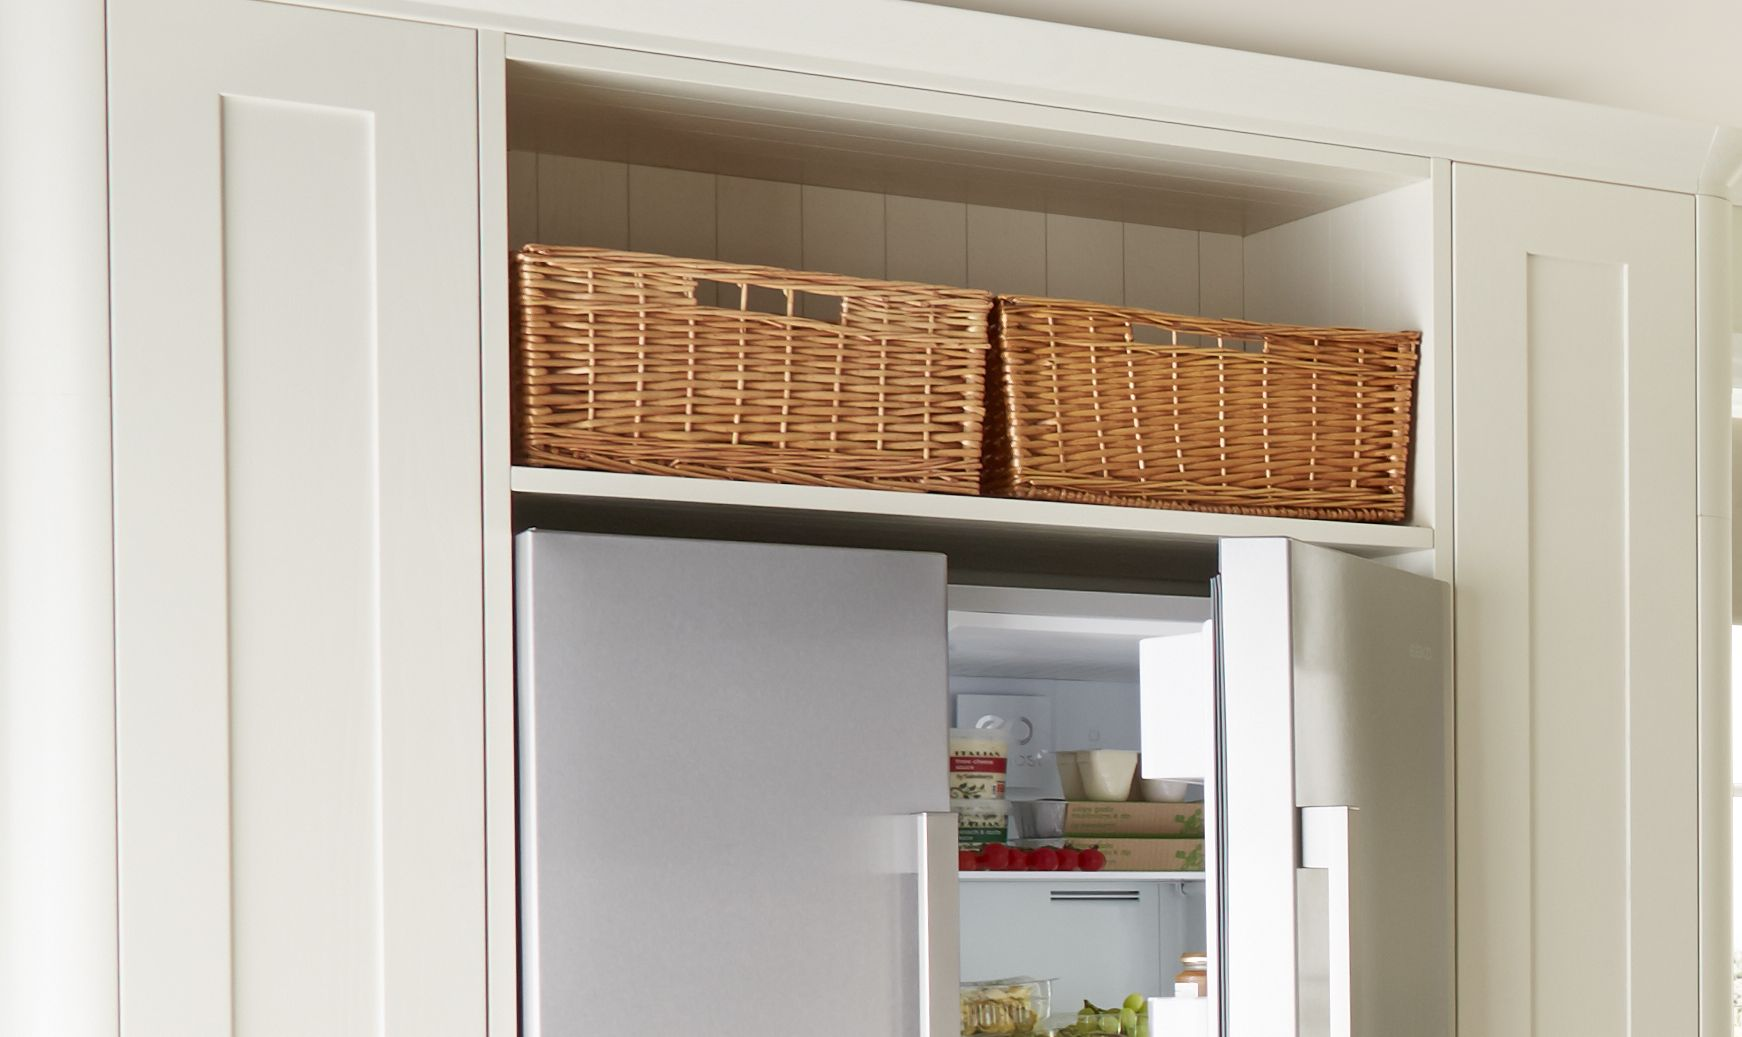 wicker basket kitchen storage